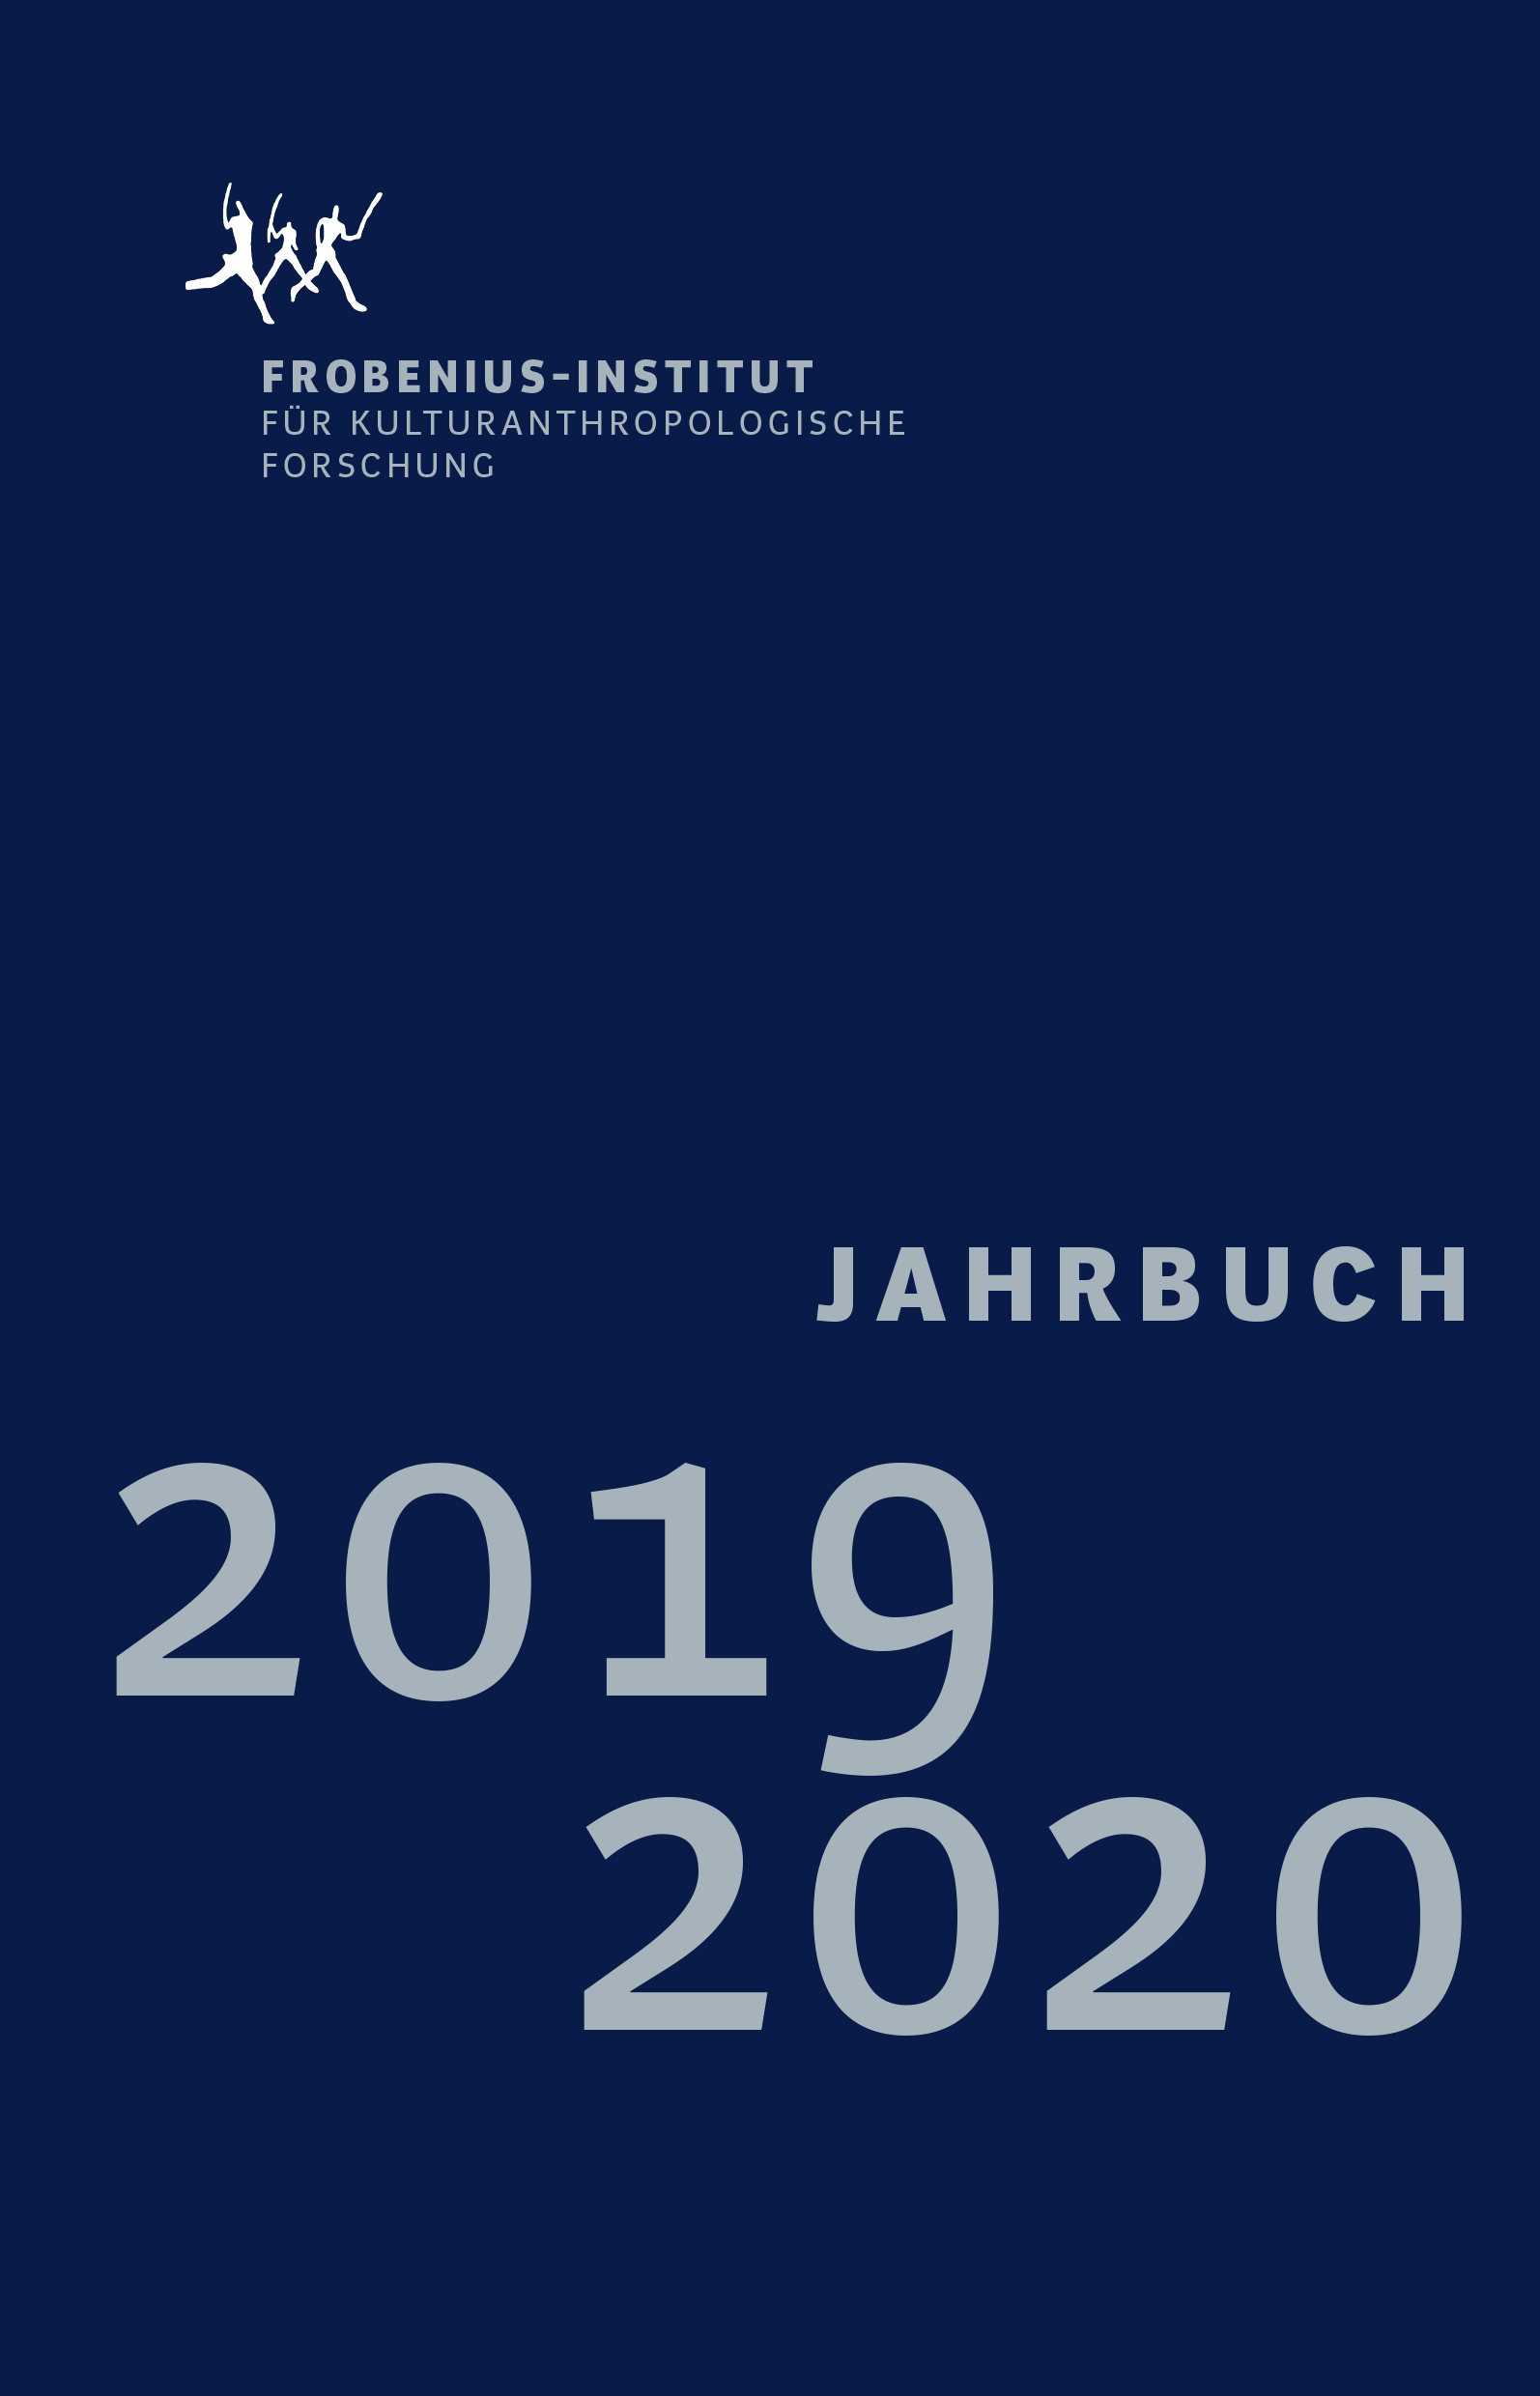 Jahrbuch 2019 20 cover